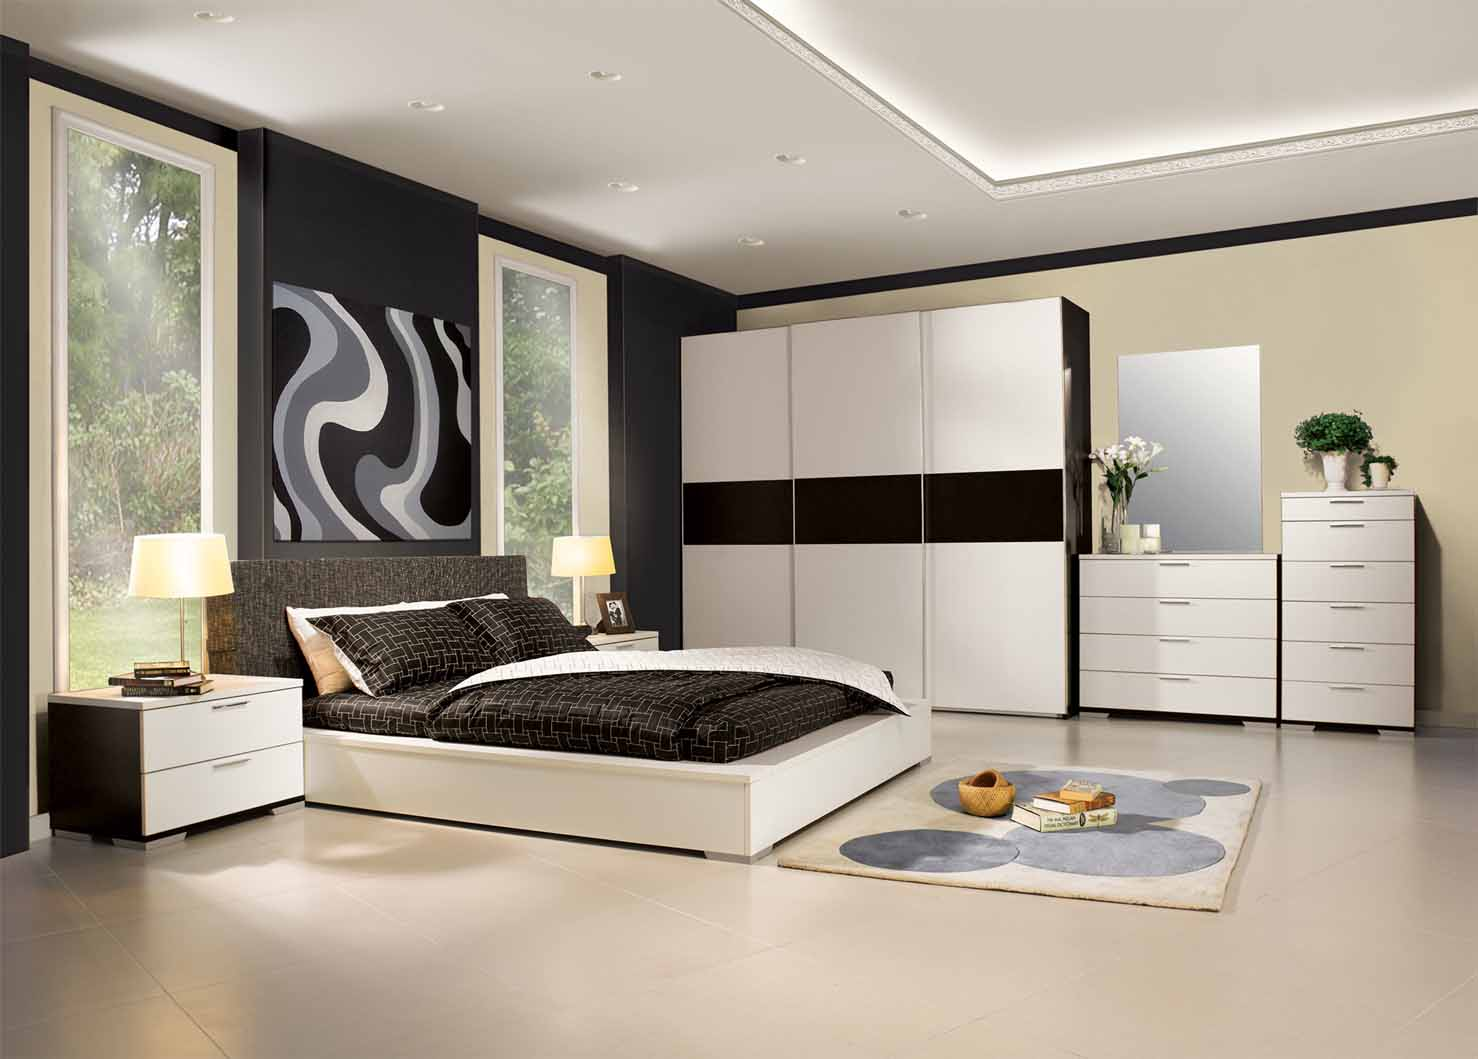 Awesome bedrooms ideas pictures 2014 decorating bedrooms for Ideas bedroom designs